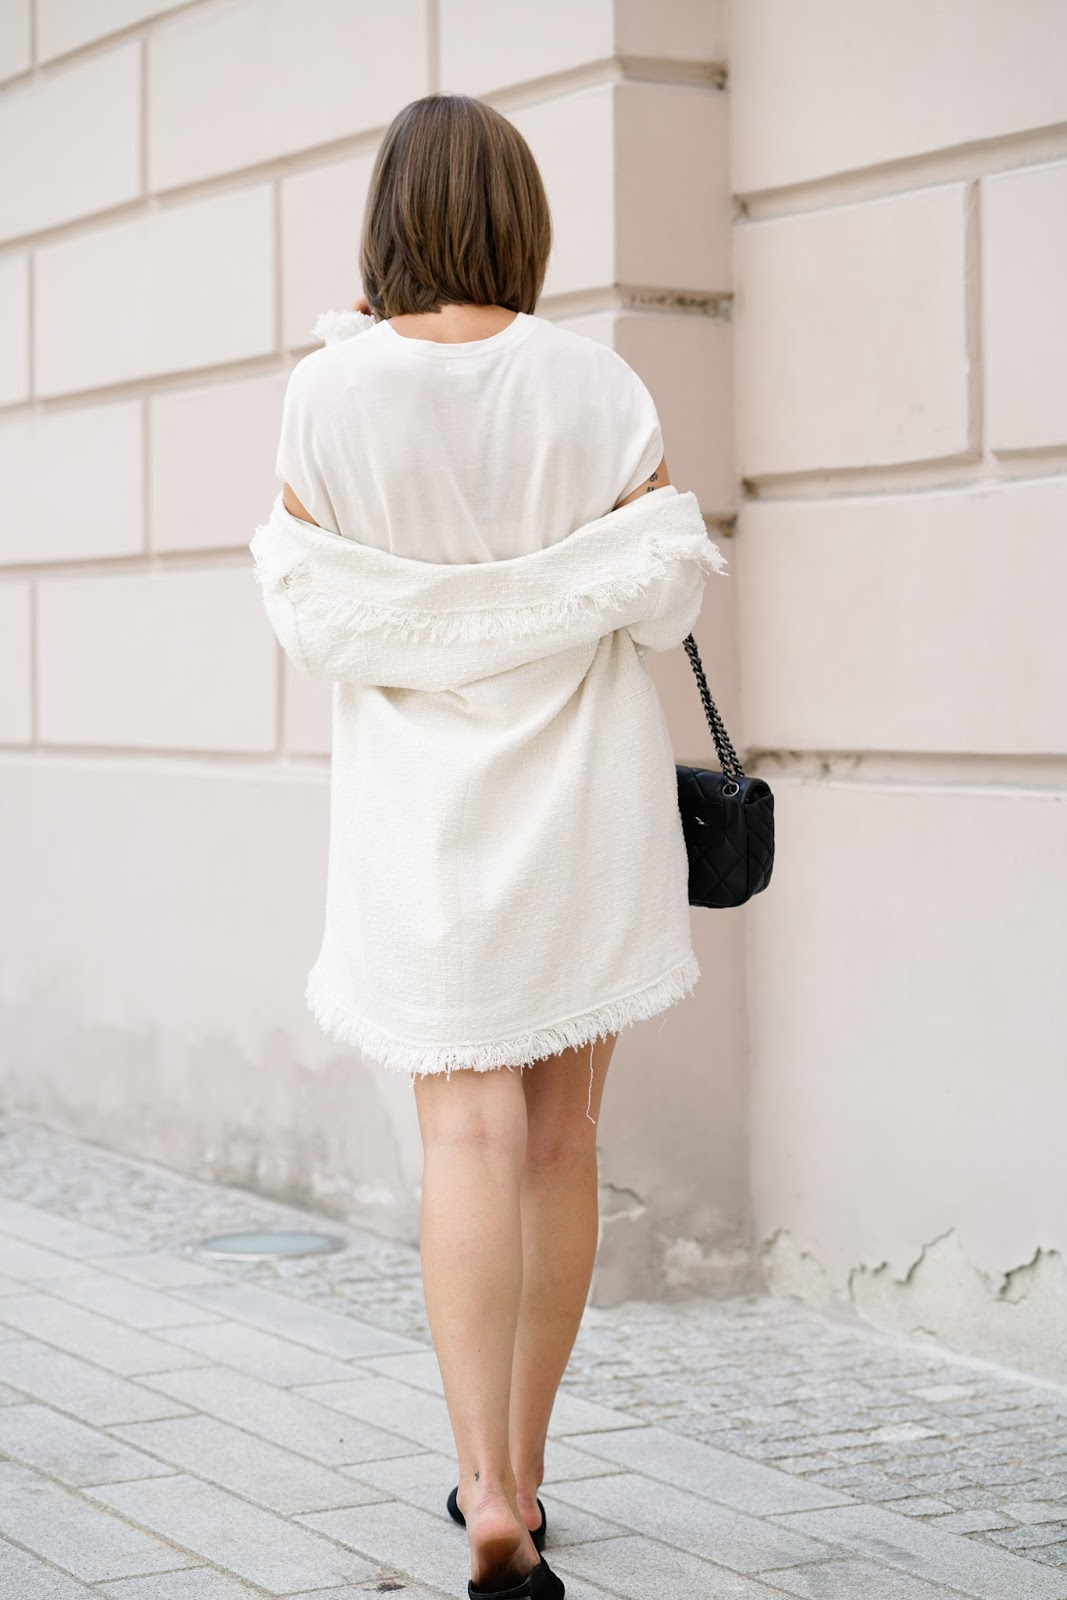 WHITE ON WHITE: HOW TO WEAR